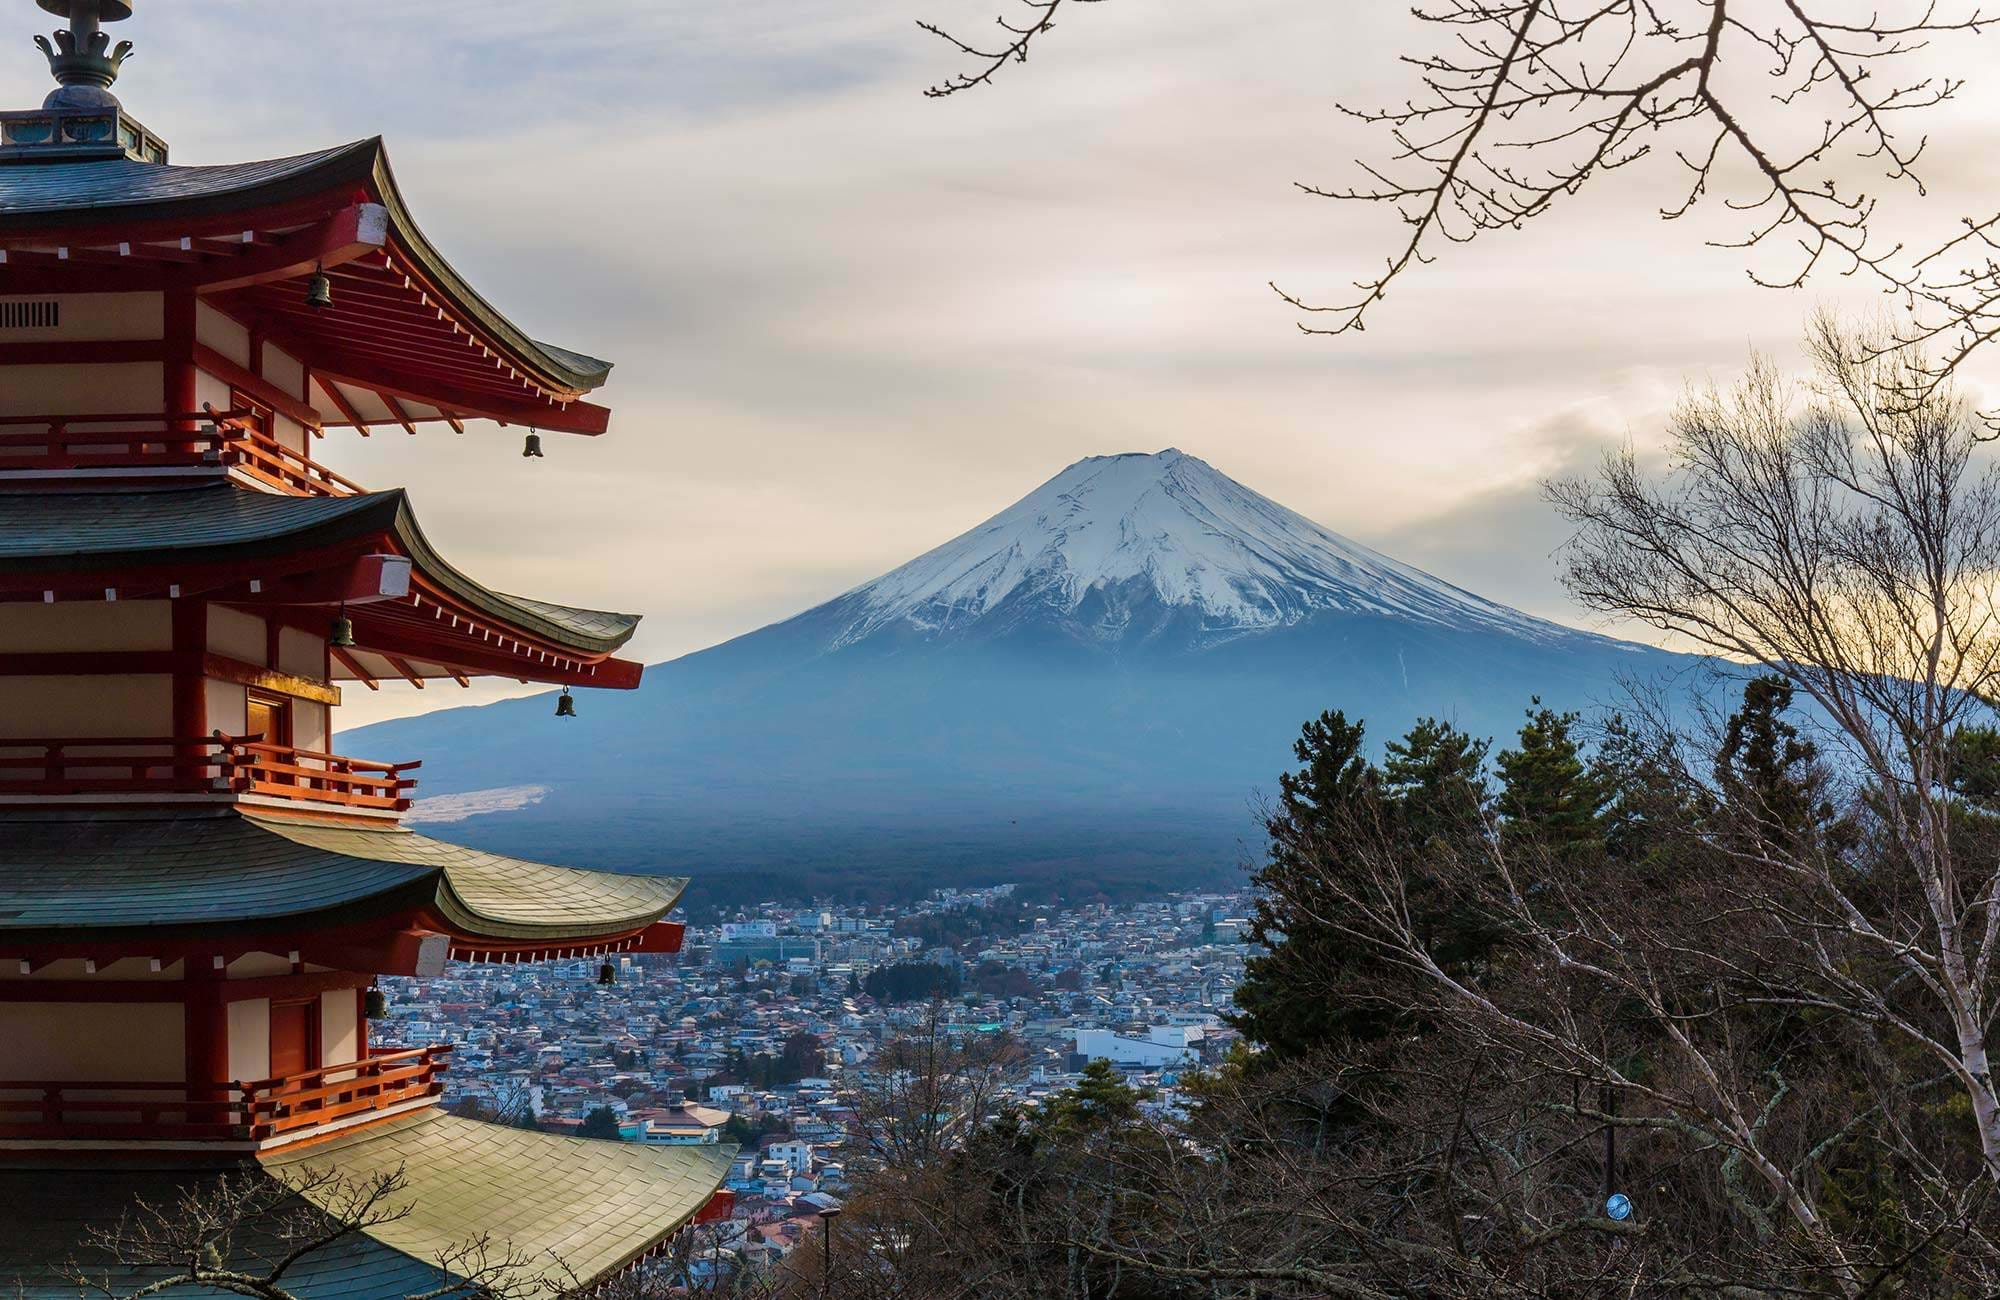 overvej at tag på tur til mount fuji mens du er i japan